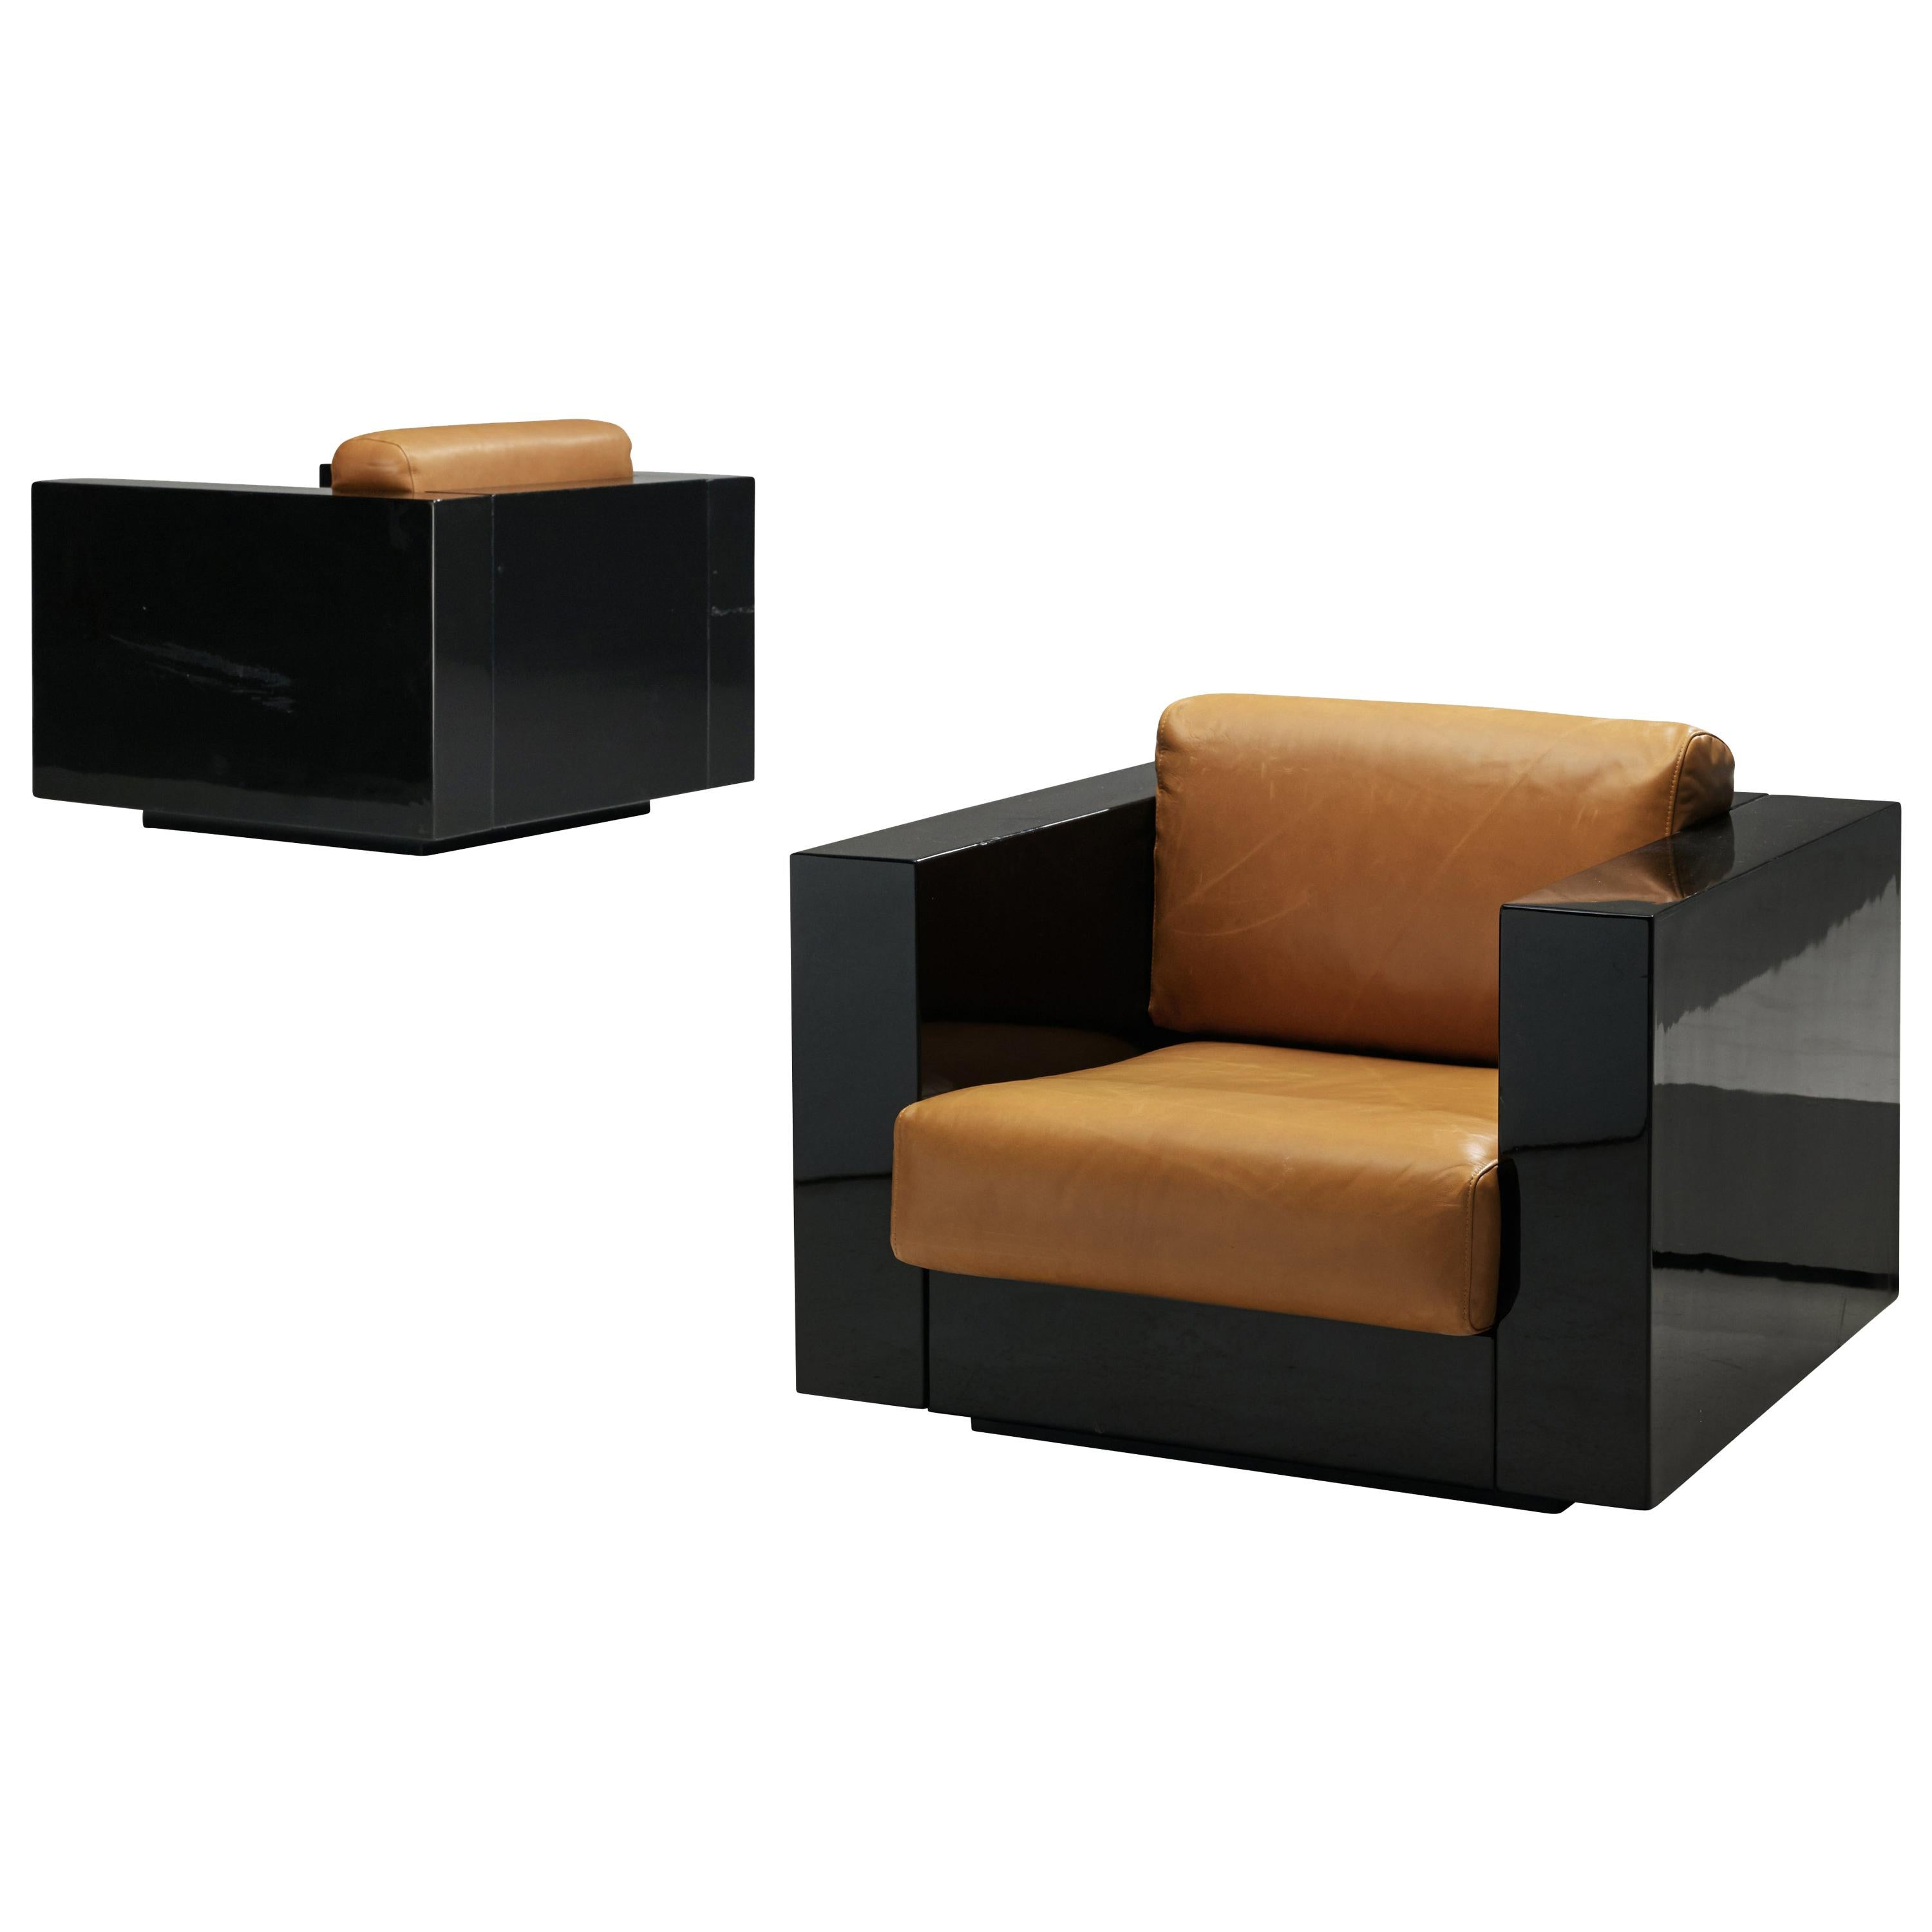 Pair of Lounge Chairs by Lella & Massimo Vignelli